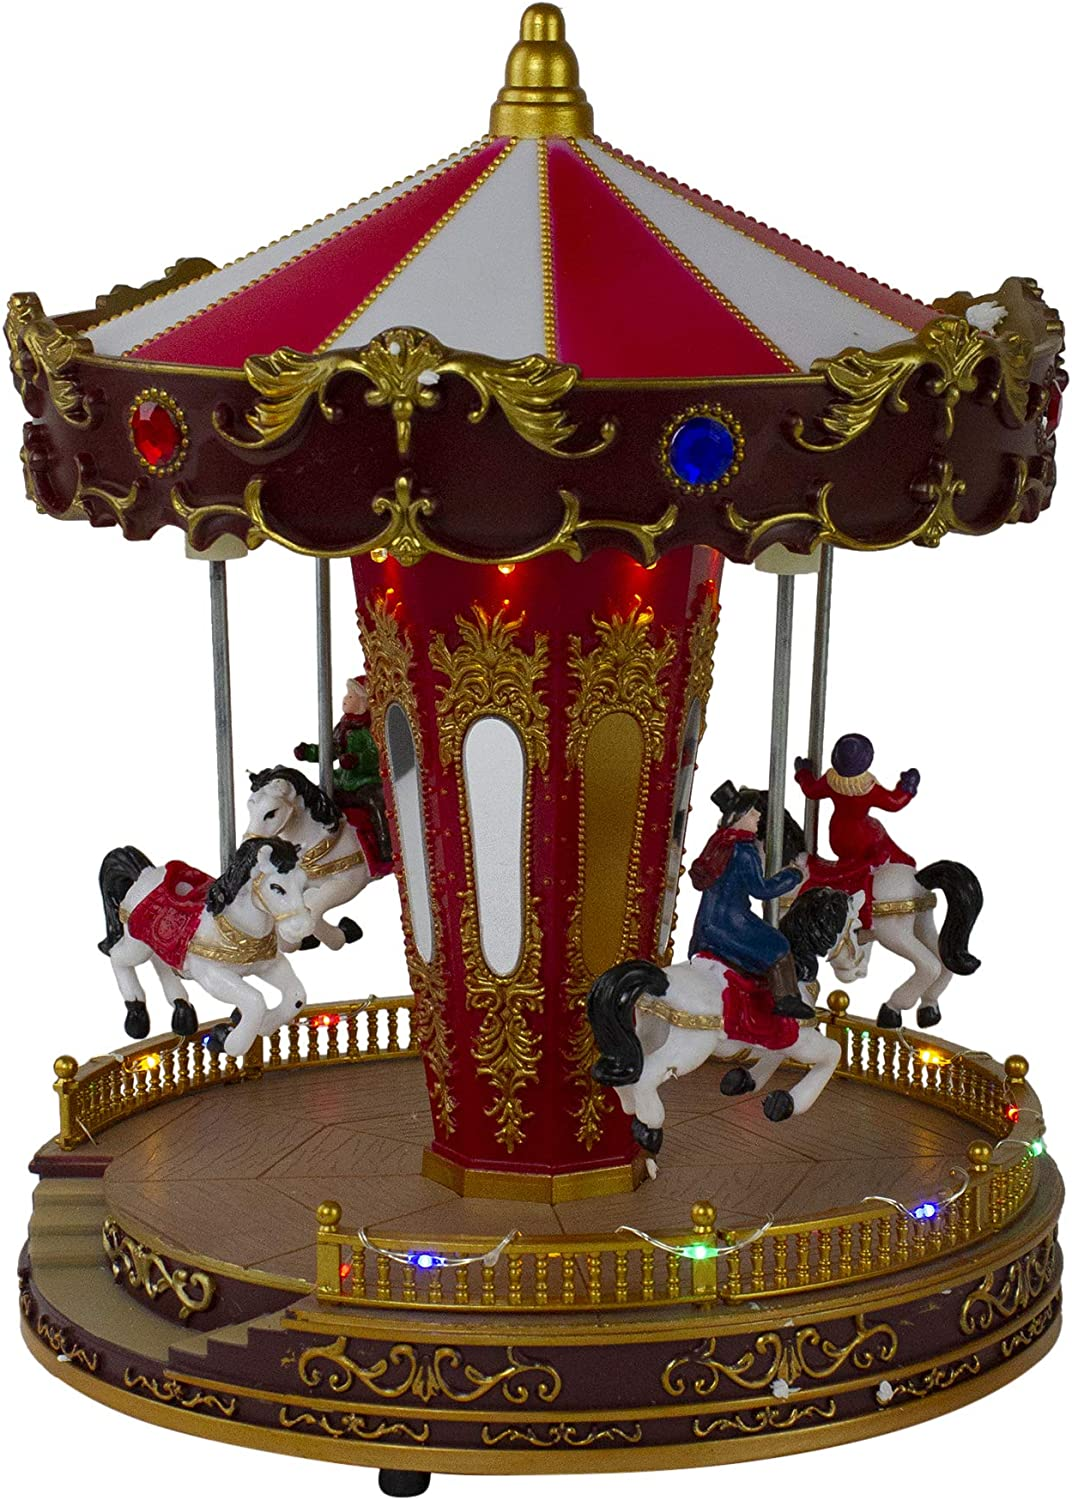 Northlight 11 LED Lighted and Animated Christmas Carousel with Horses